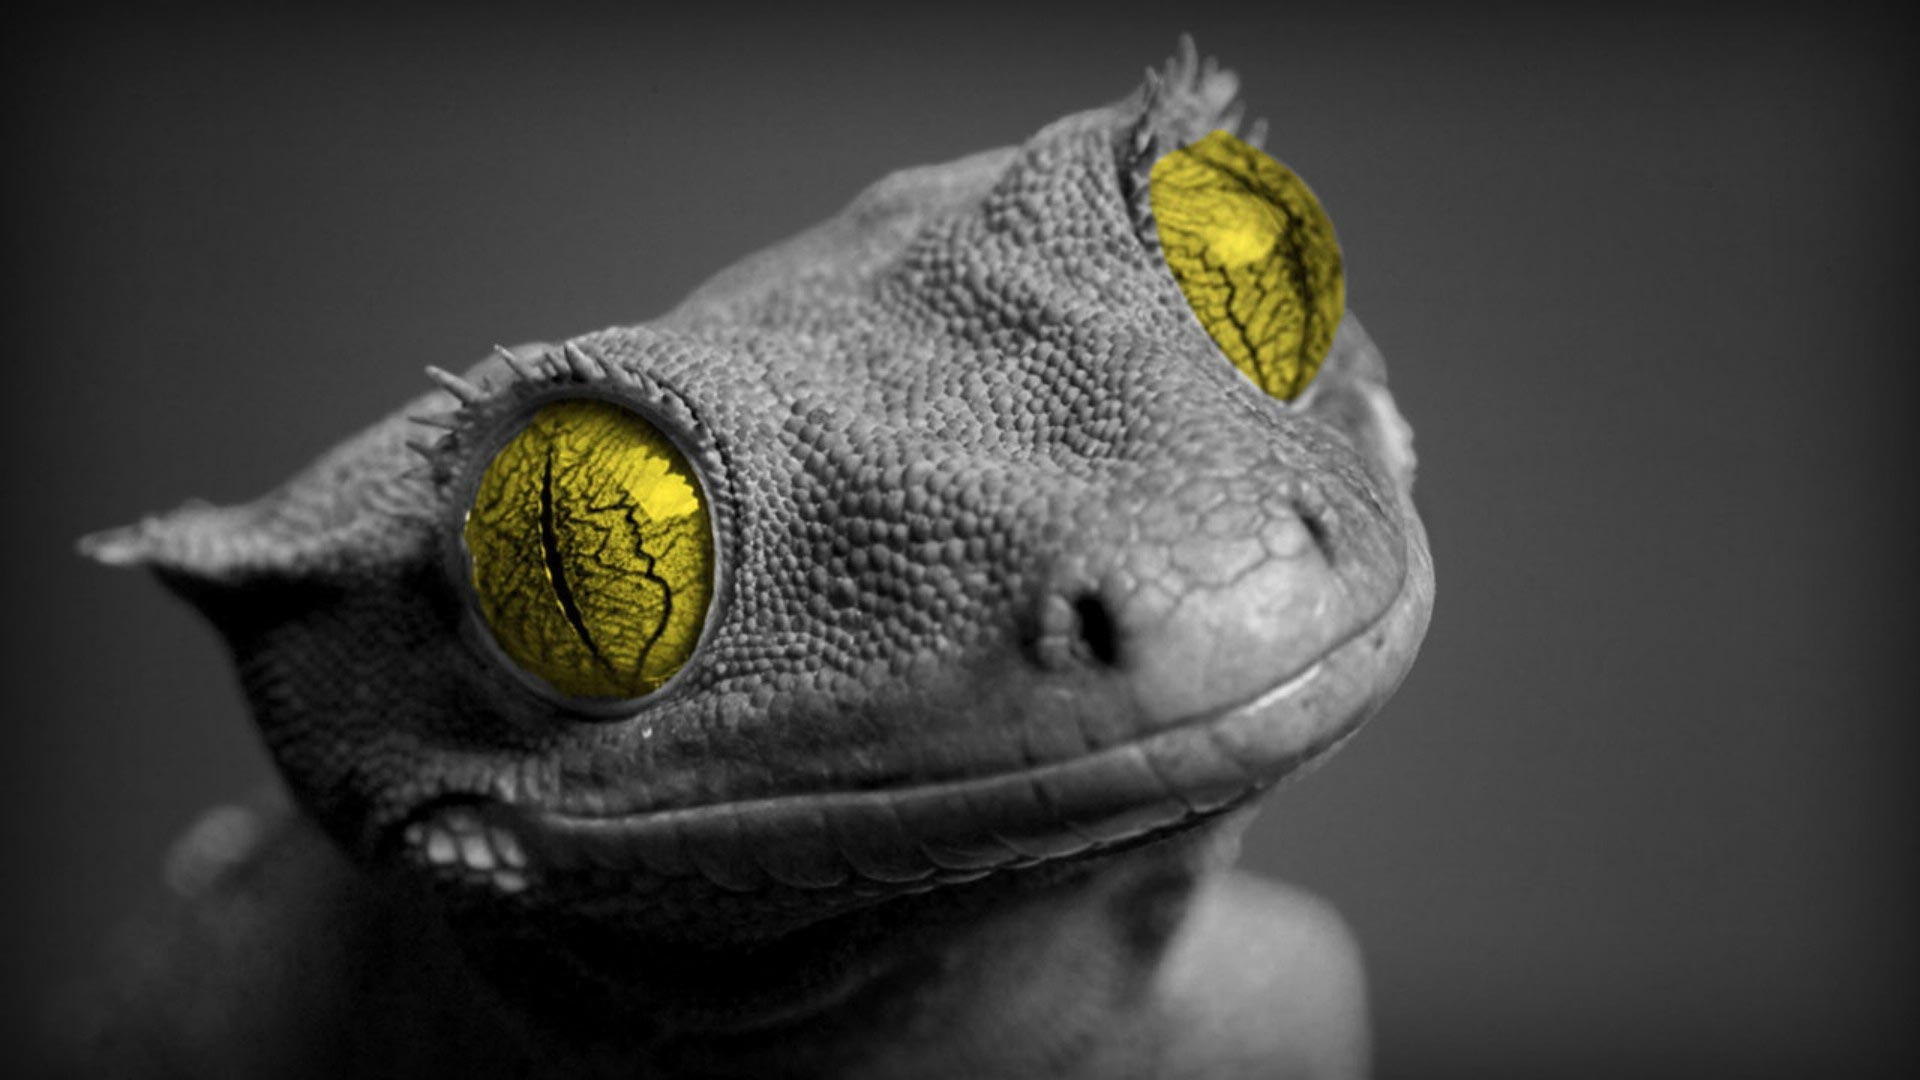 Cute Lizard Wallpaper